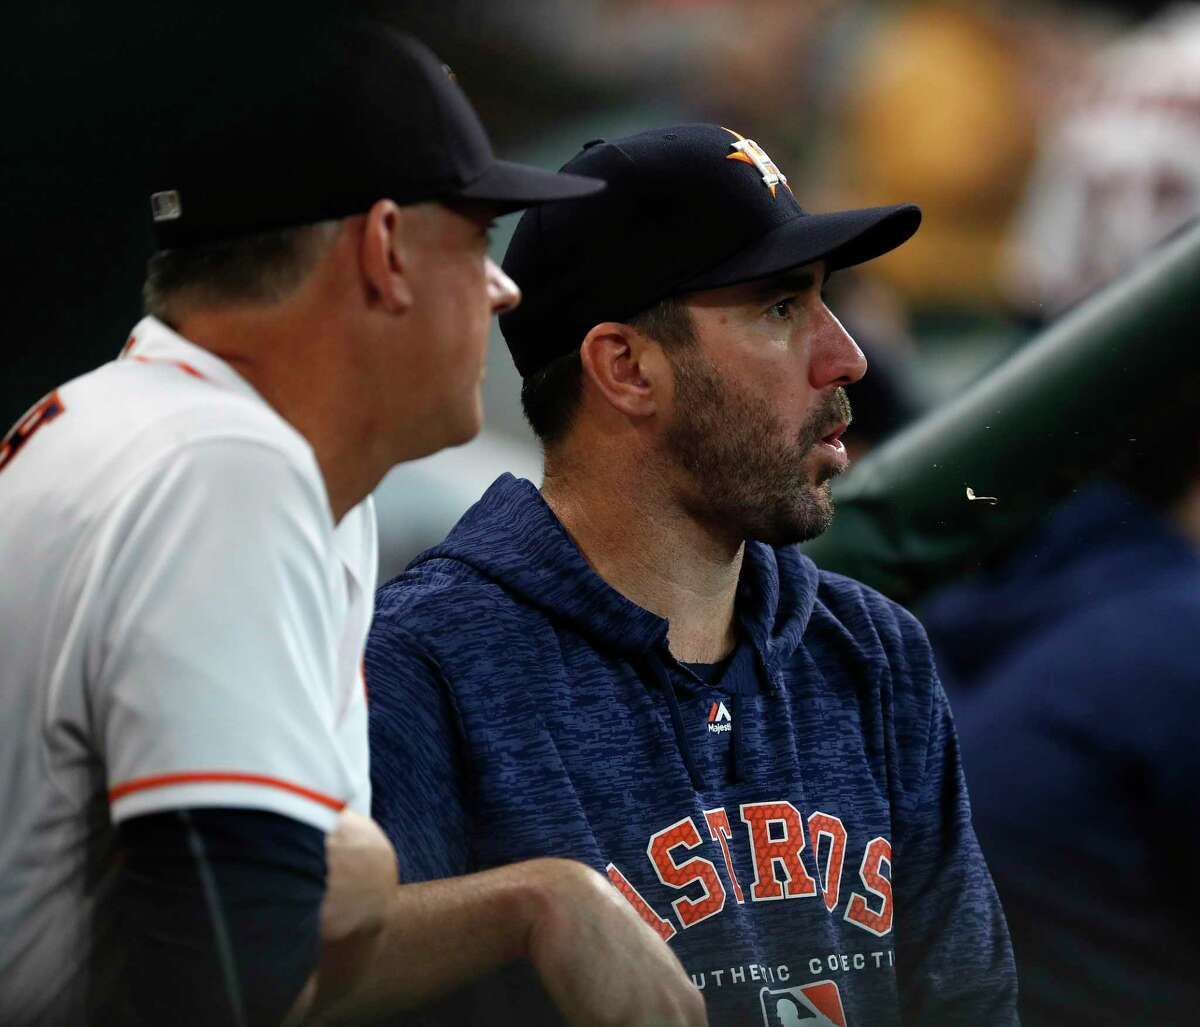 Houston Astros Justin Verlander spits seeds as he talks with manager AJ Hinch in the dugout during the fourth inning of an MLB game at Minute Maid Park, Thursday, July 12, 2018, in Houston.